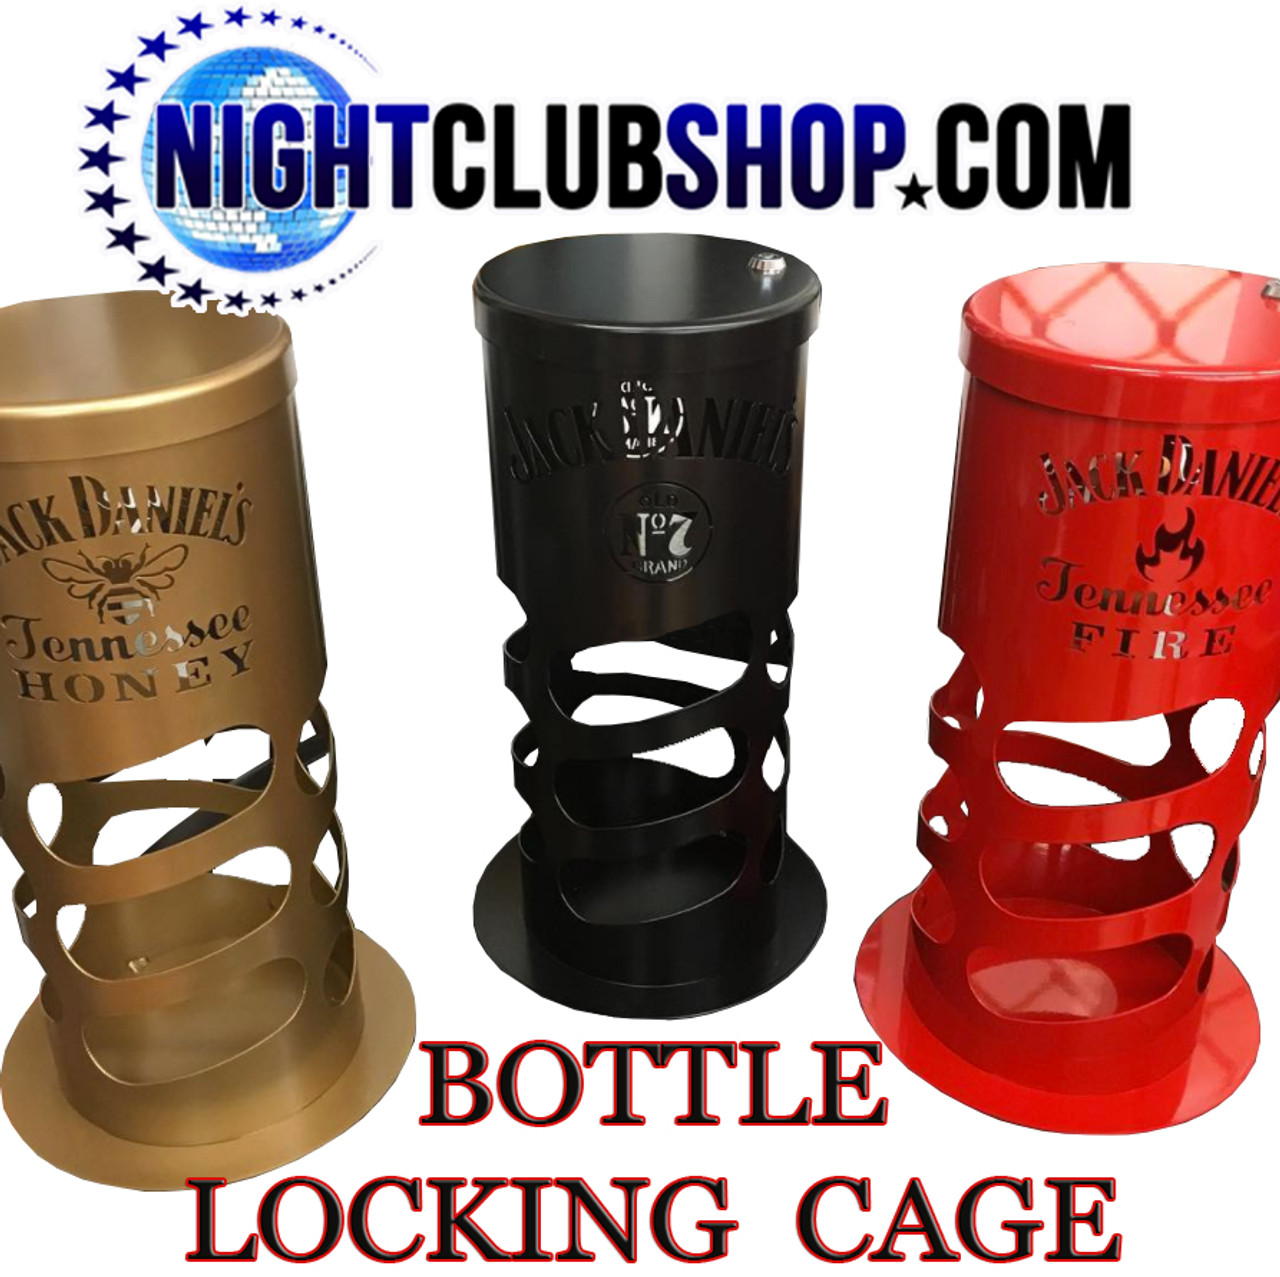 custom colors-Bottle,Lock,cage, Liquor,Locking,Security,cages,drink,champagne,VIP, Table,Steel,metal,container,holder,Lock box, custom,Nightclub,bar